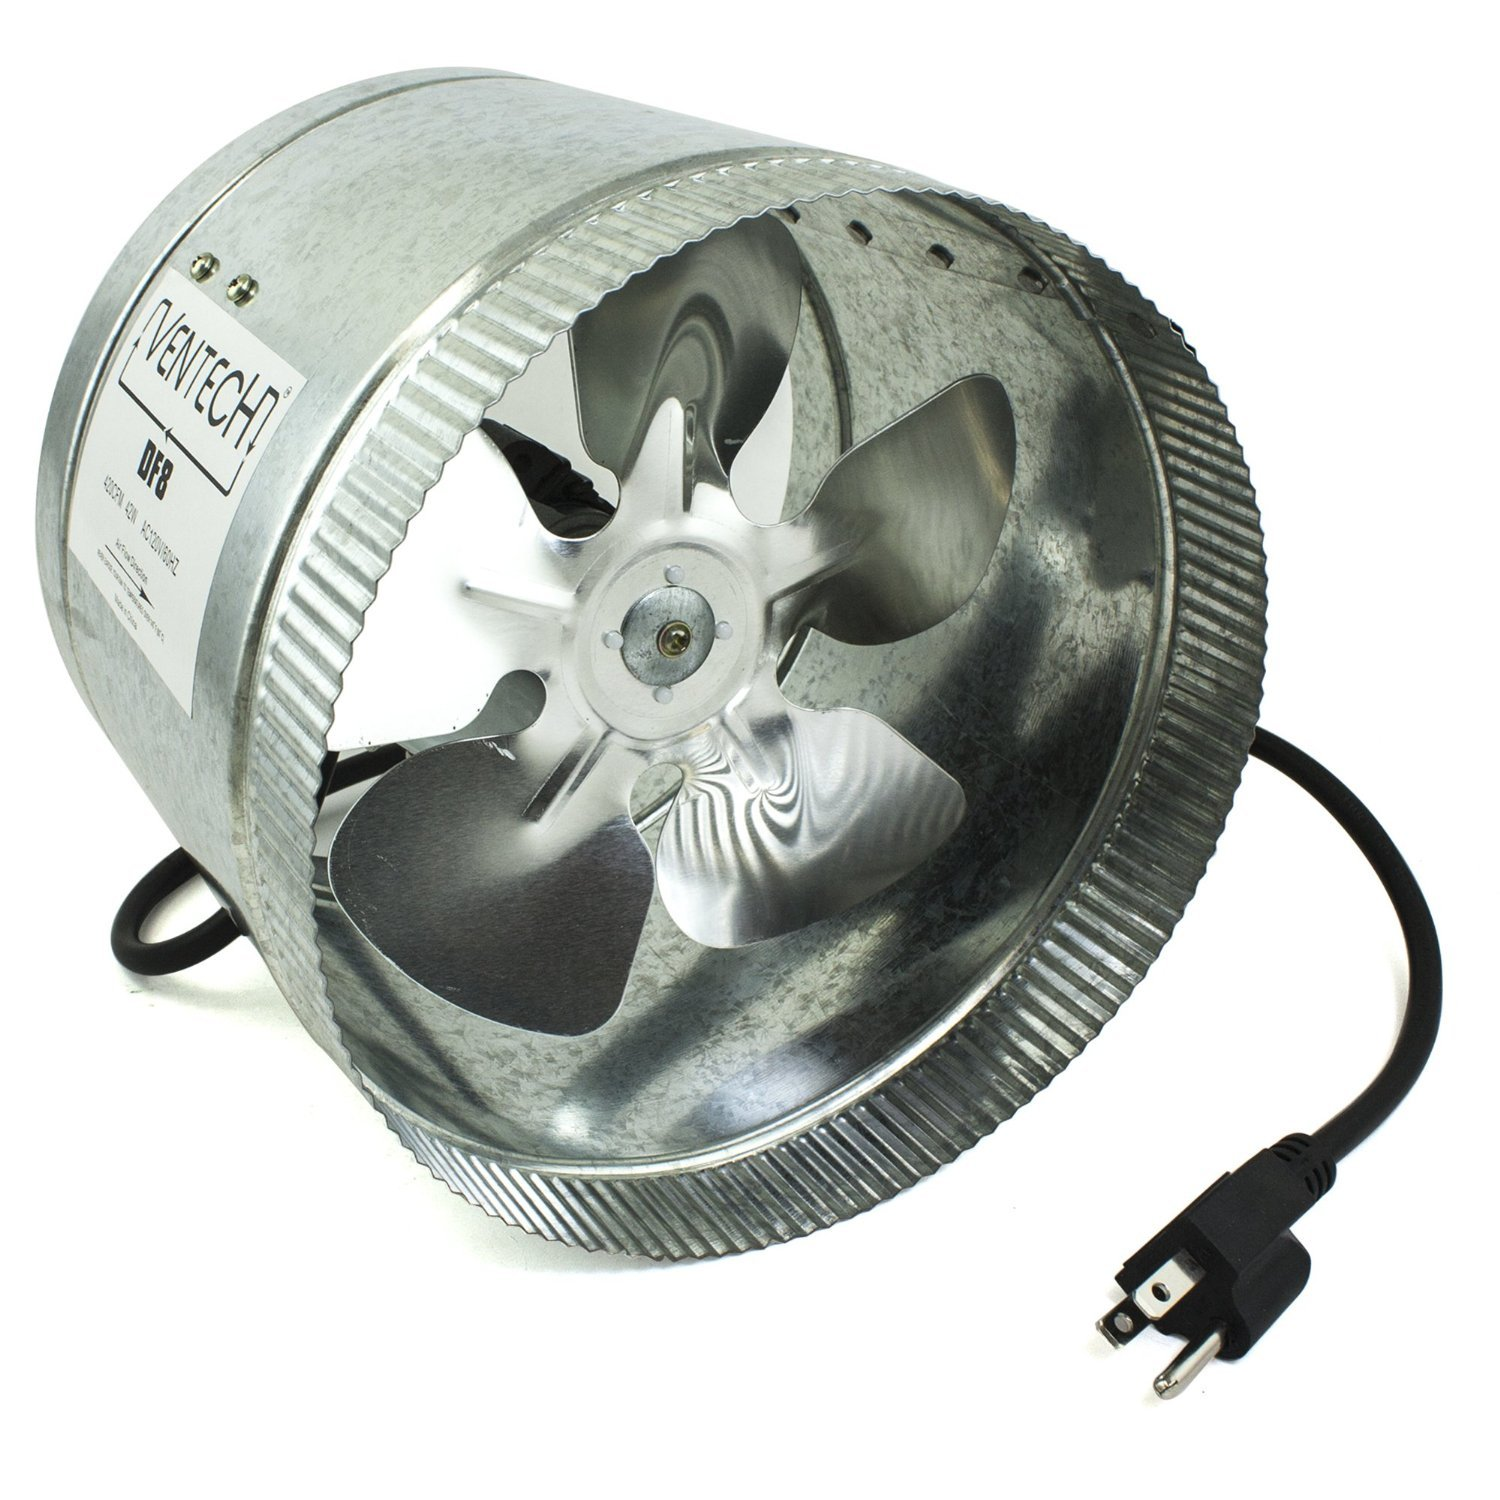 "VenTech VT DF 8 DF8 Duct Fan 420 CFM 8"" Built In Household"